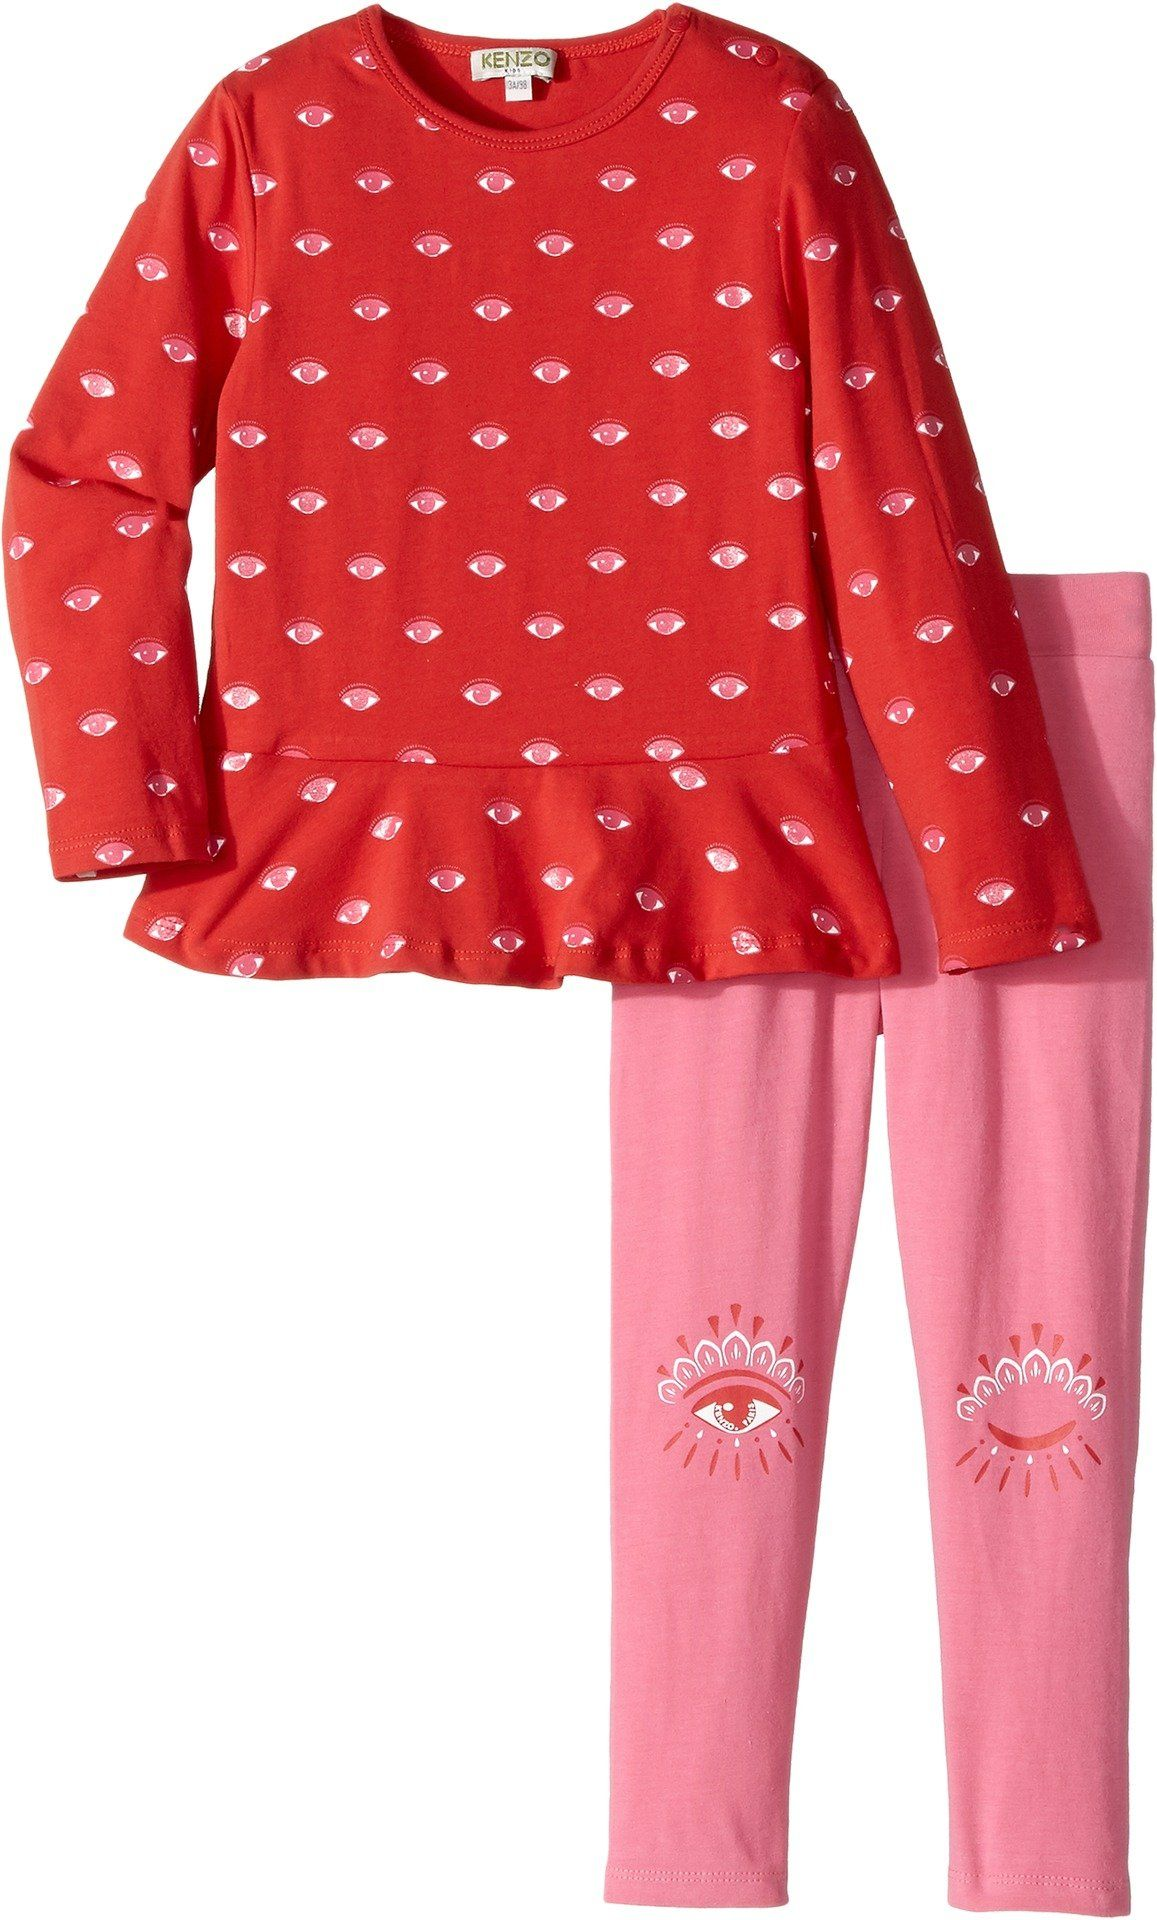 Kenzo Kids Baby Girl s Red and Pink Eye Ensemble Toddler Red 3T